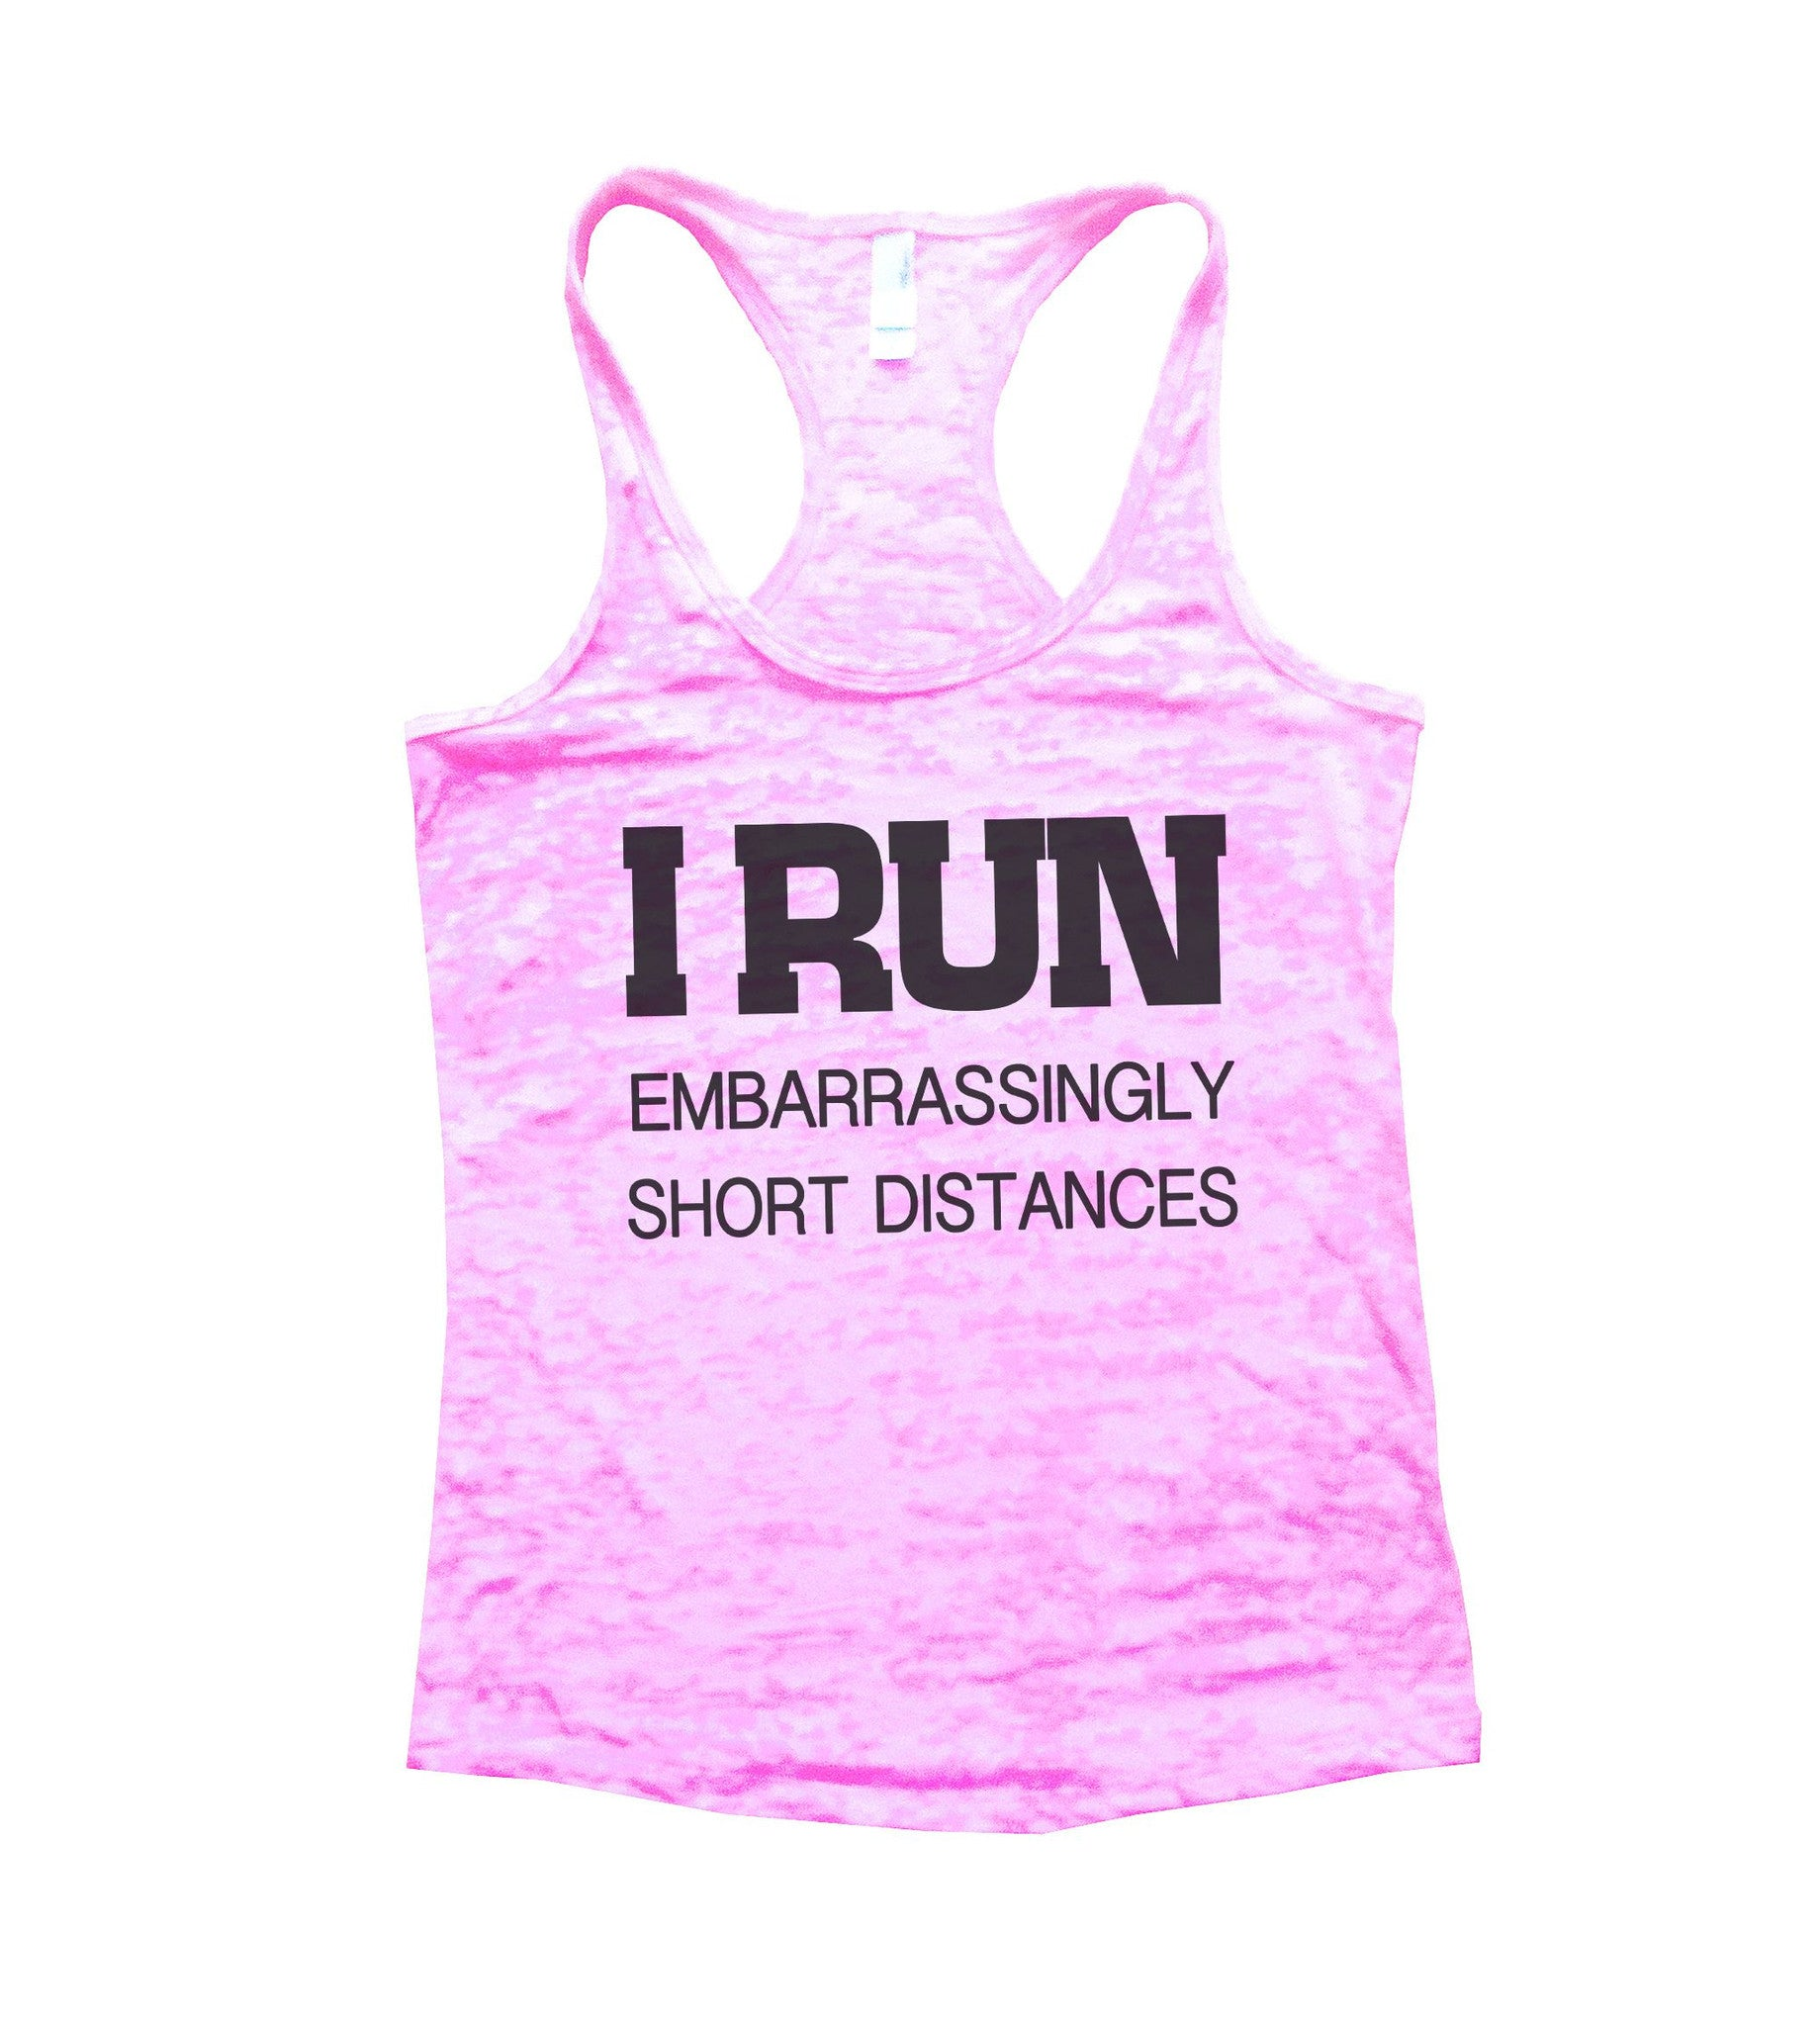 I Run Embarrassingly Short Distances Burnout Tank Top By BurnoutTankTops.com - 733 - Funny Shirts Tank Tops Burnouts and Triblends  - 2